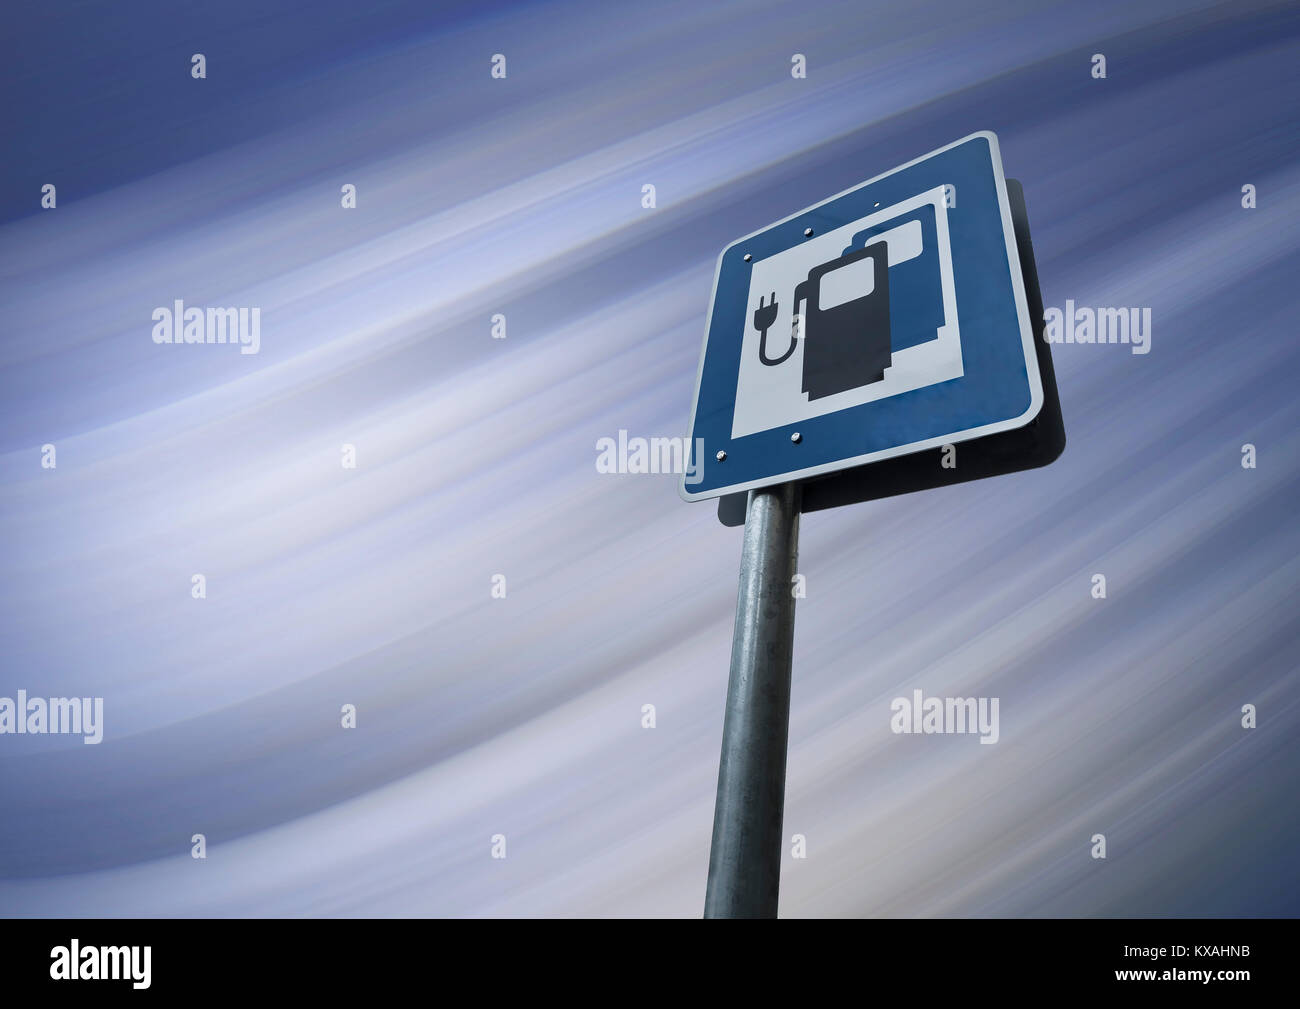 Information sign for electric car charging stations, electro-mobility, public charging device on road, Germany Stock Photo